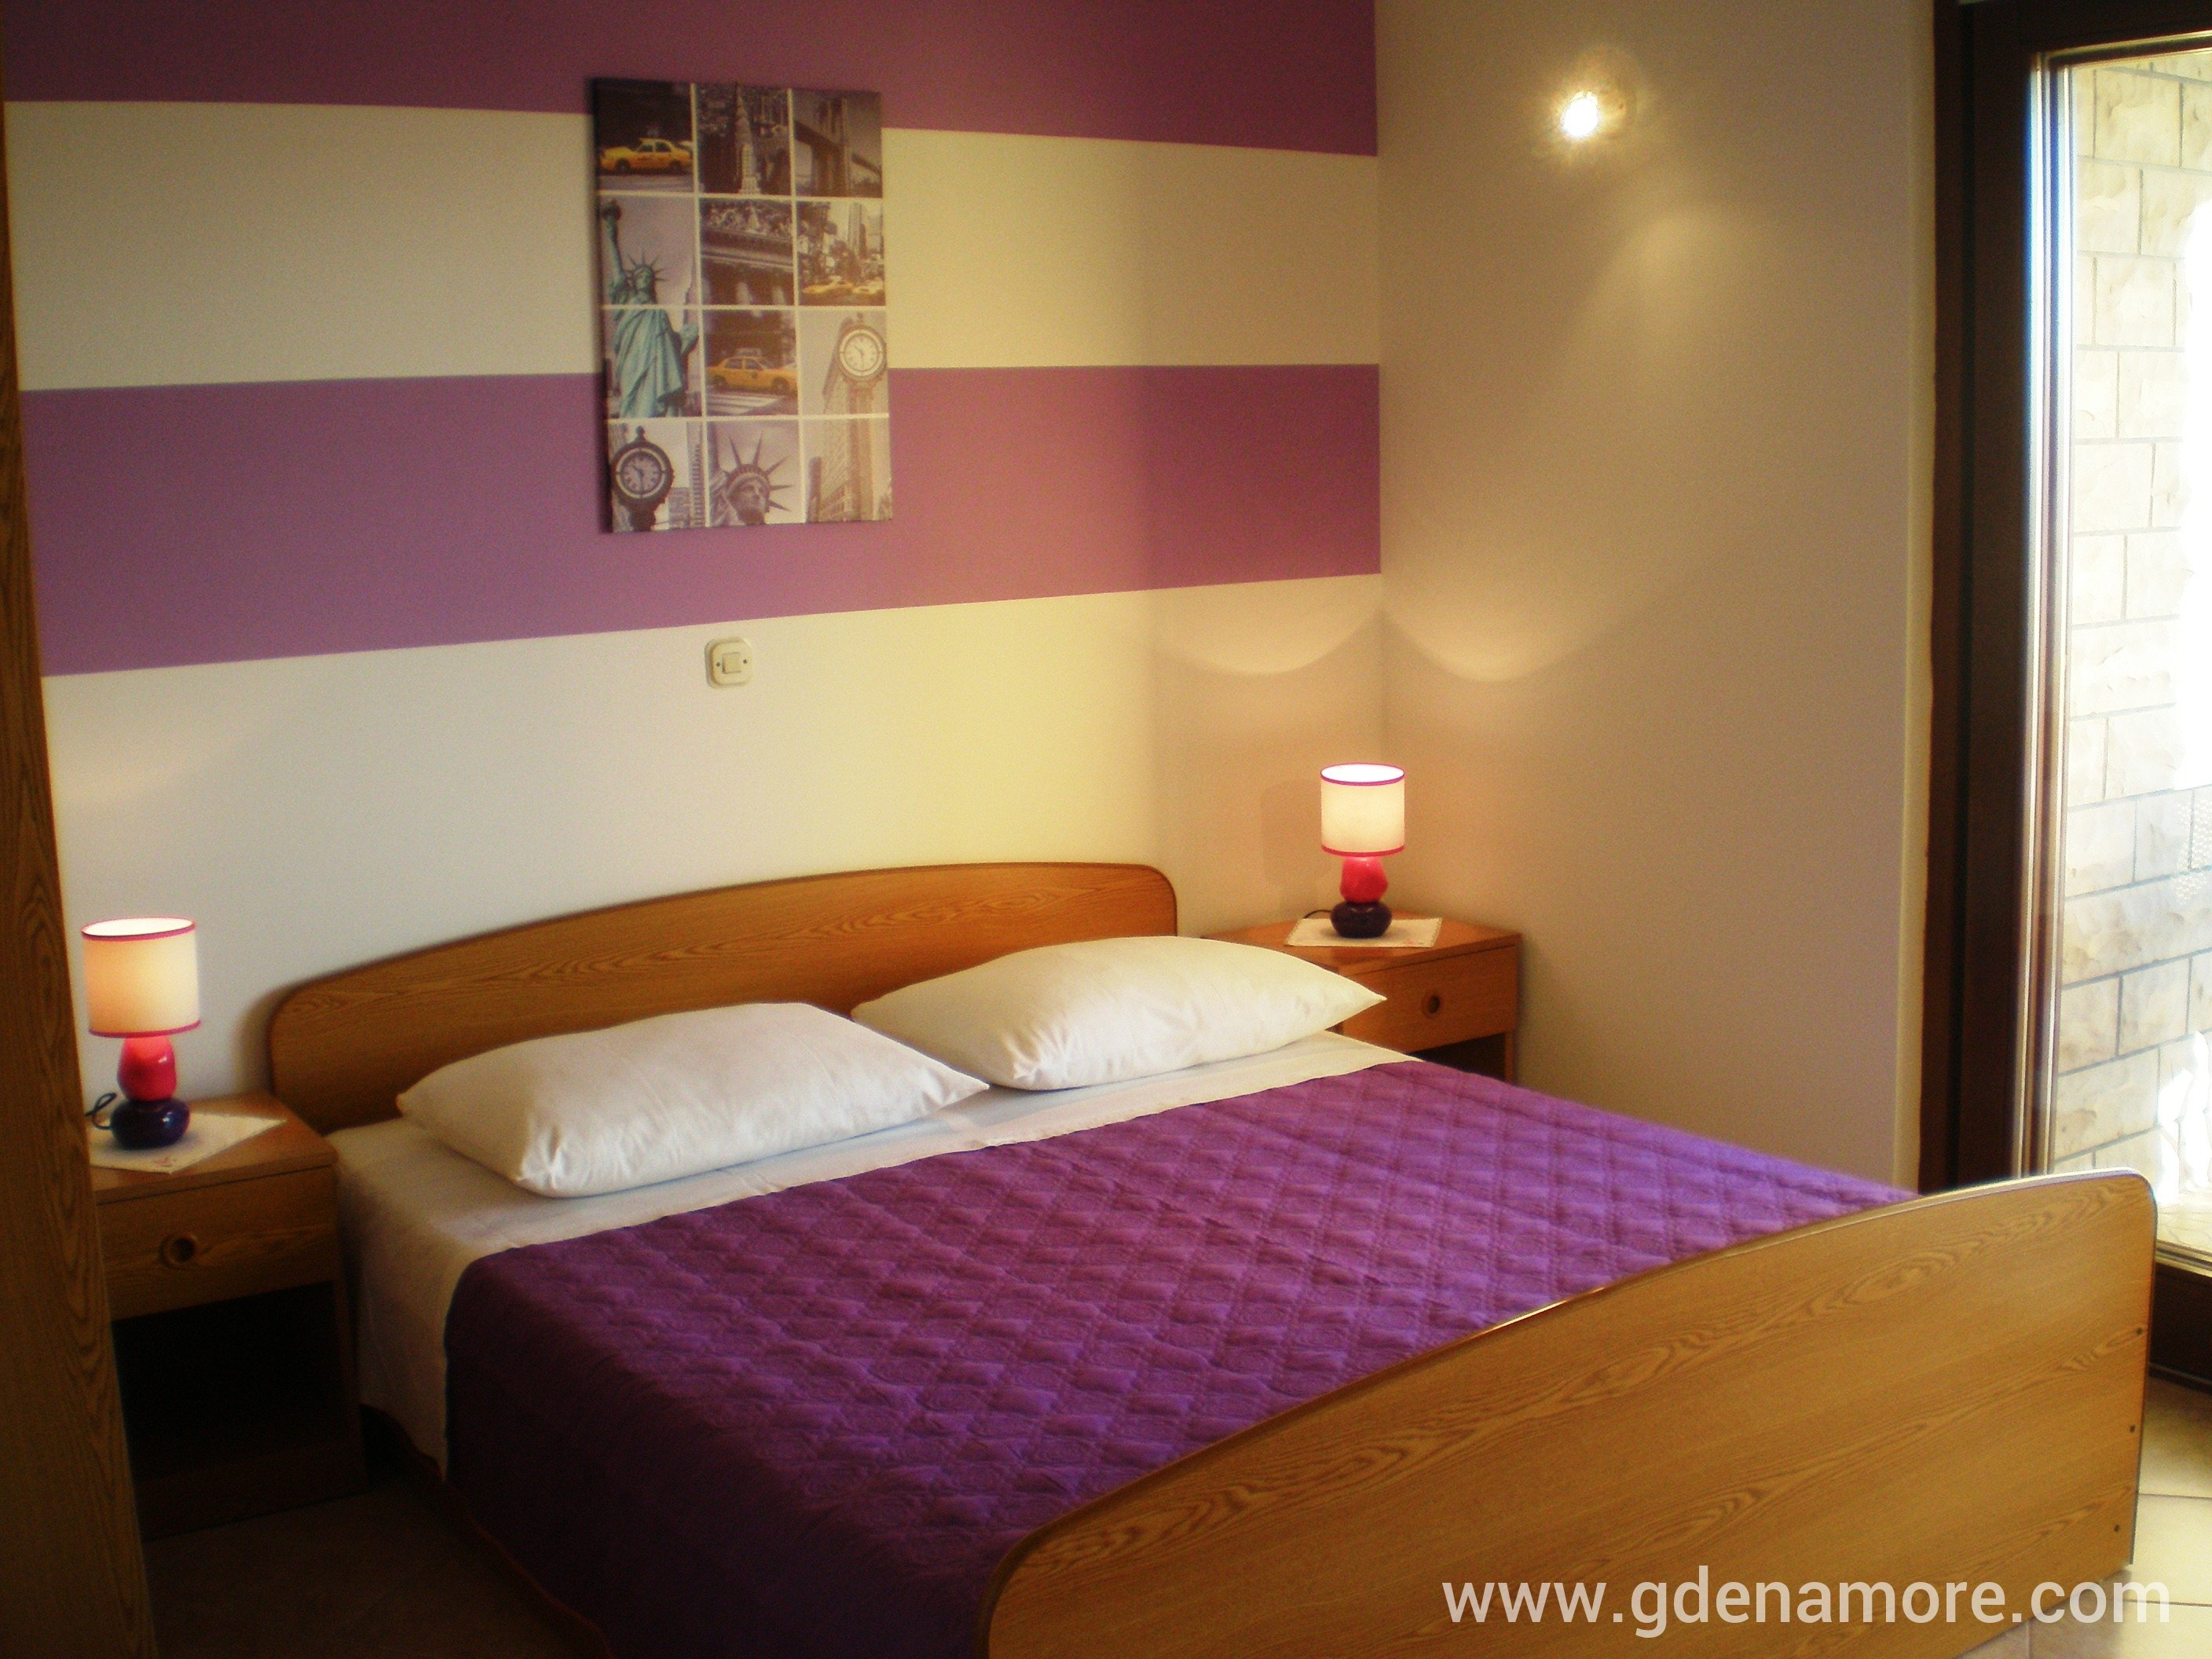 private accommodation apartments tamara (violet apartment) in